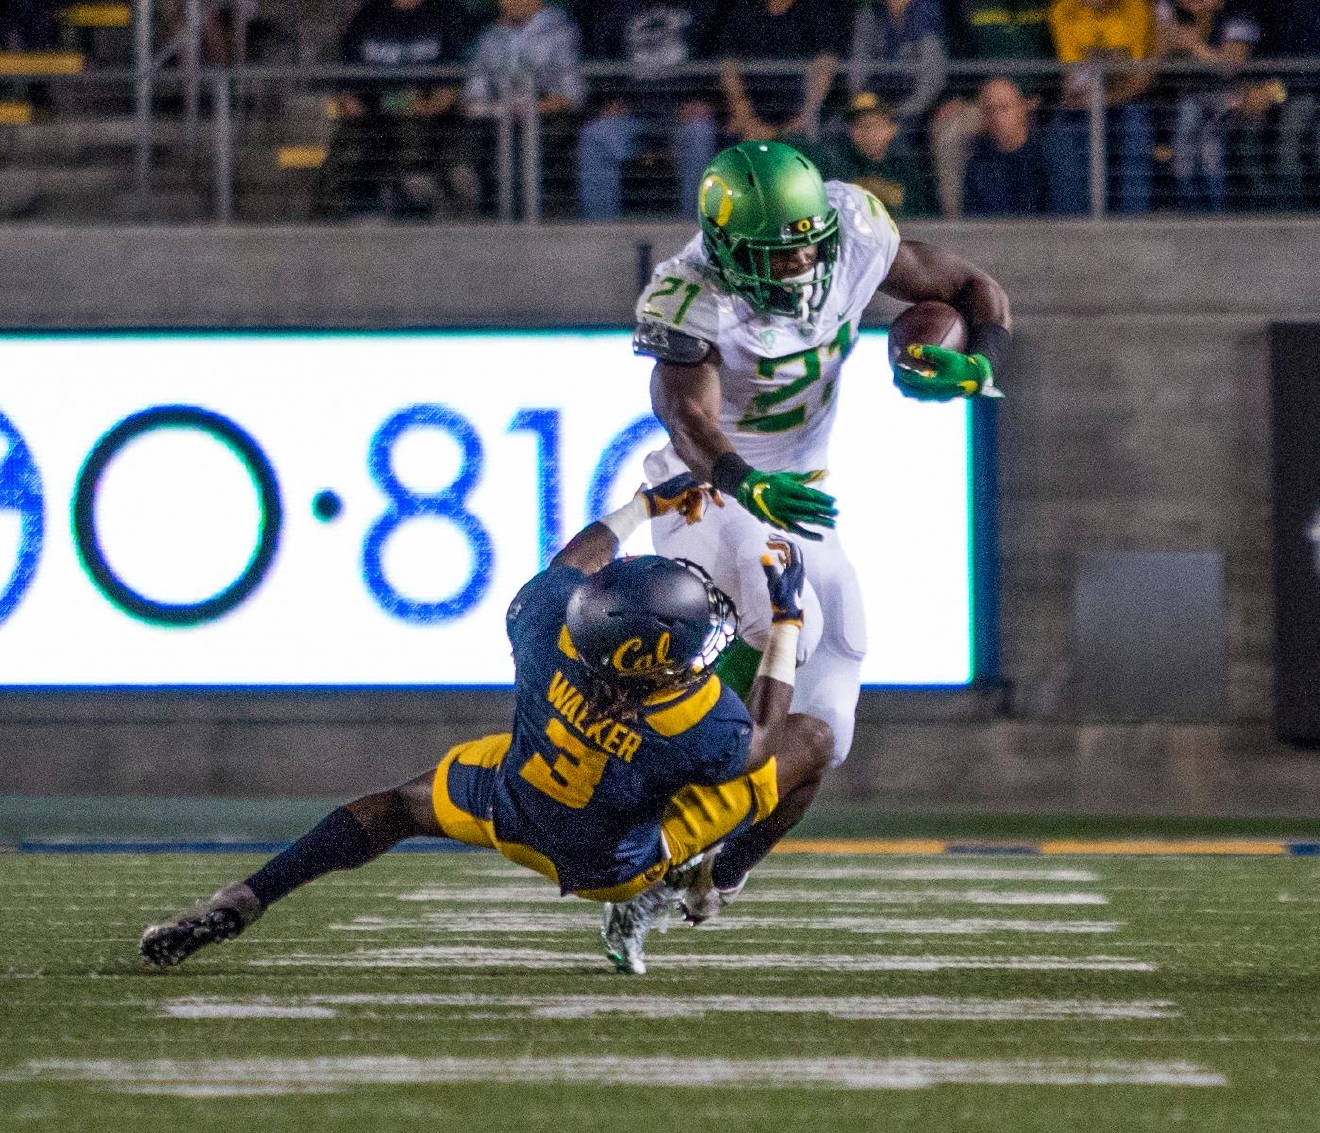 California Bears Cameron Walker (#3) attempts to tackle Oregon Ducks Royce Freeman (#21). The California Bears beat the Oregon Ducks 52-49 in 2 OT at California Memorial Stadium in Berkeley, CA on Friday evening. Photo by Katie Pietzold